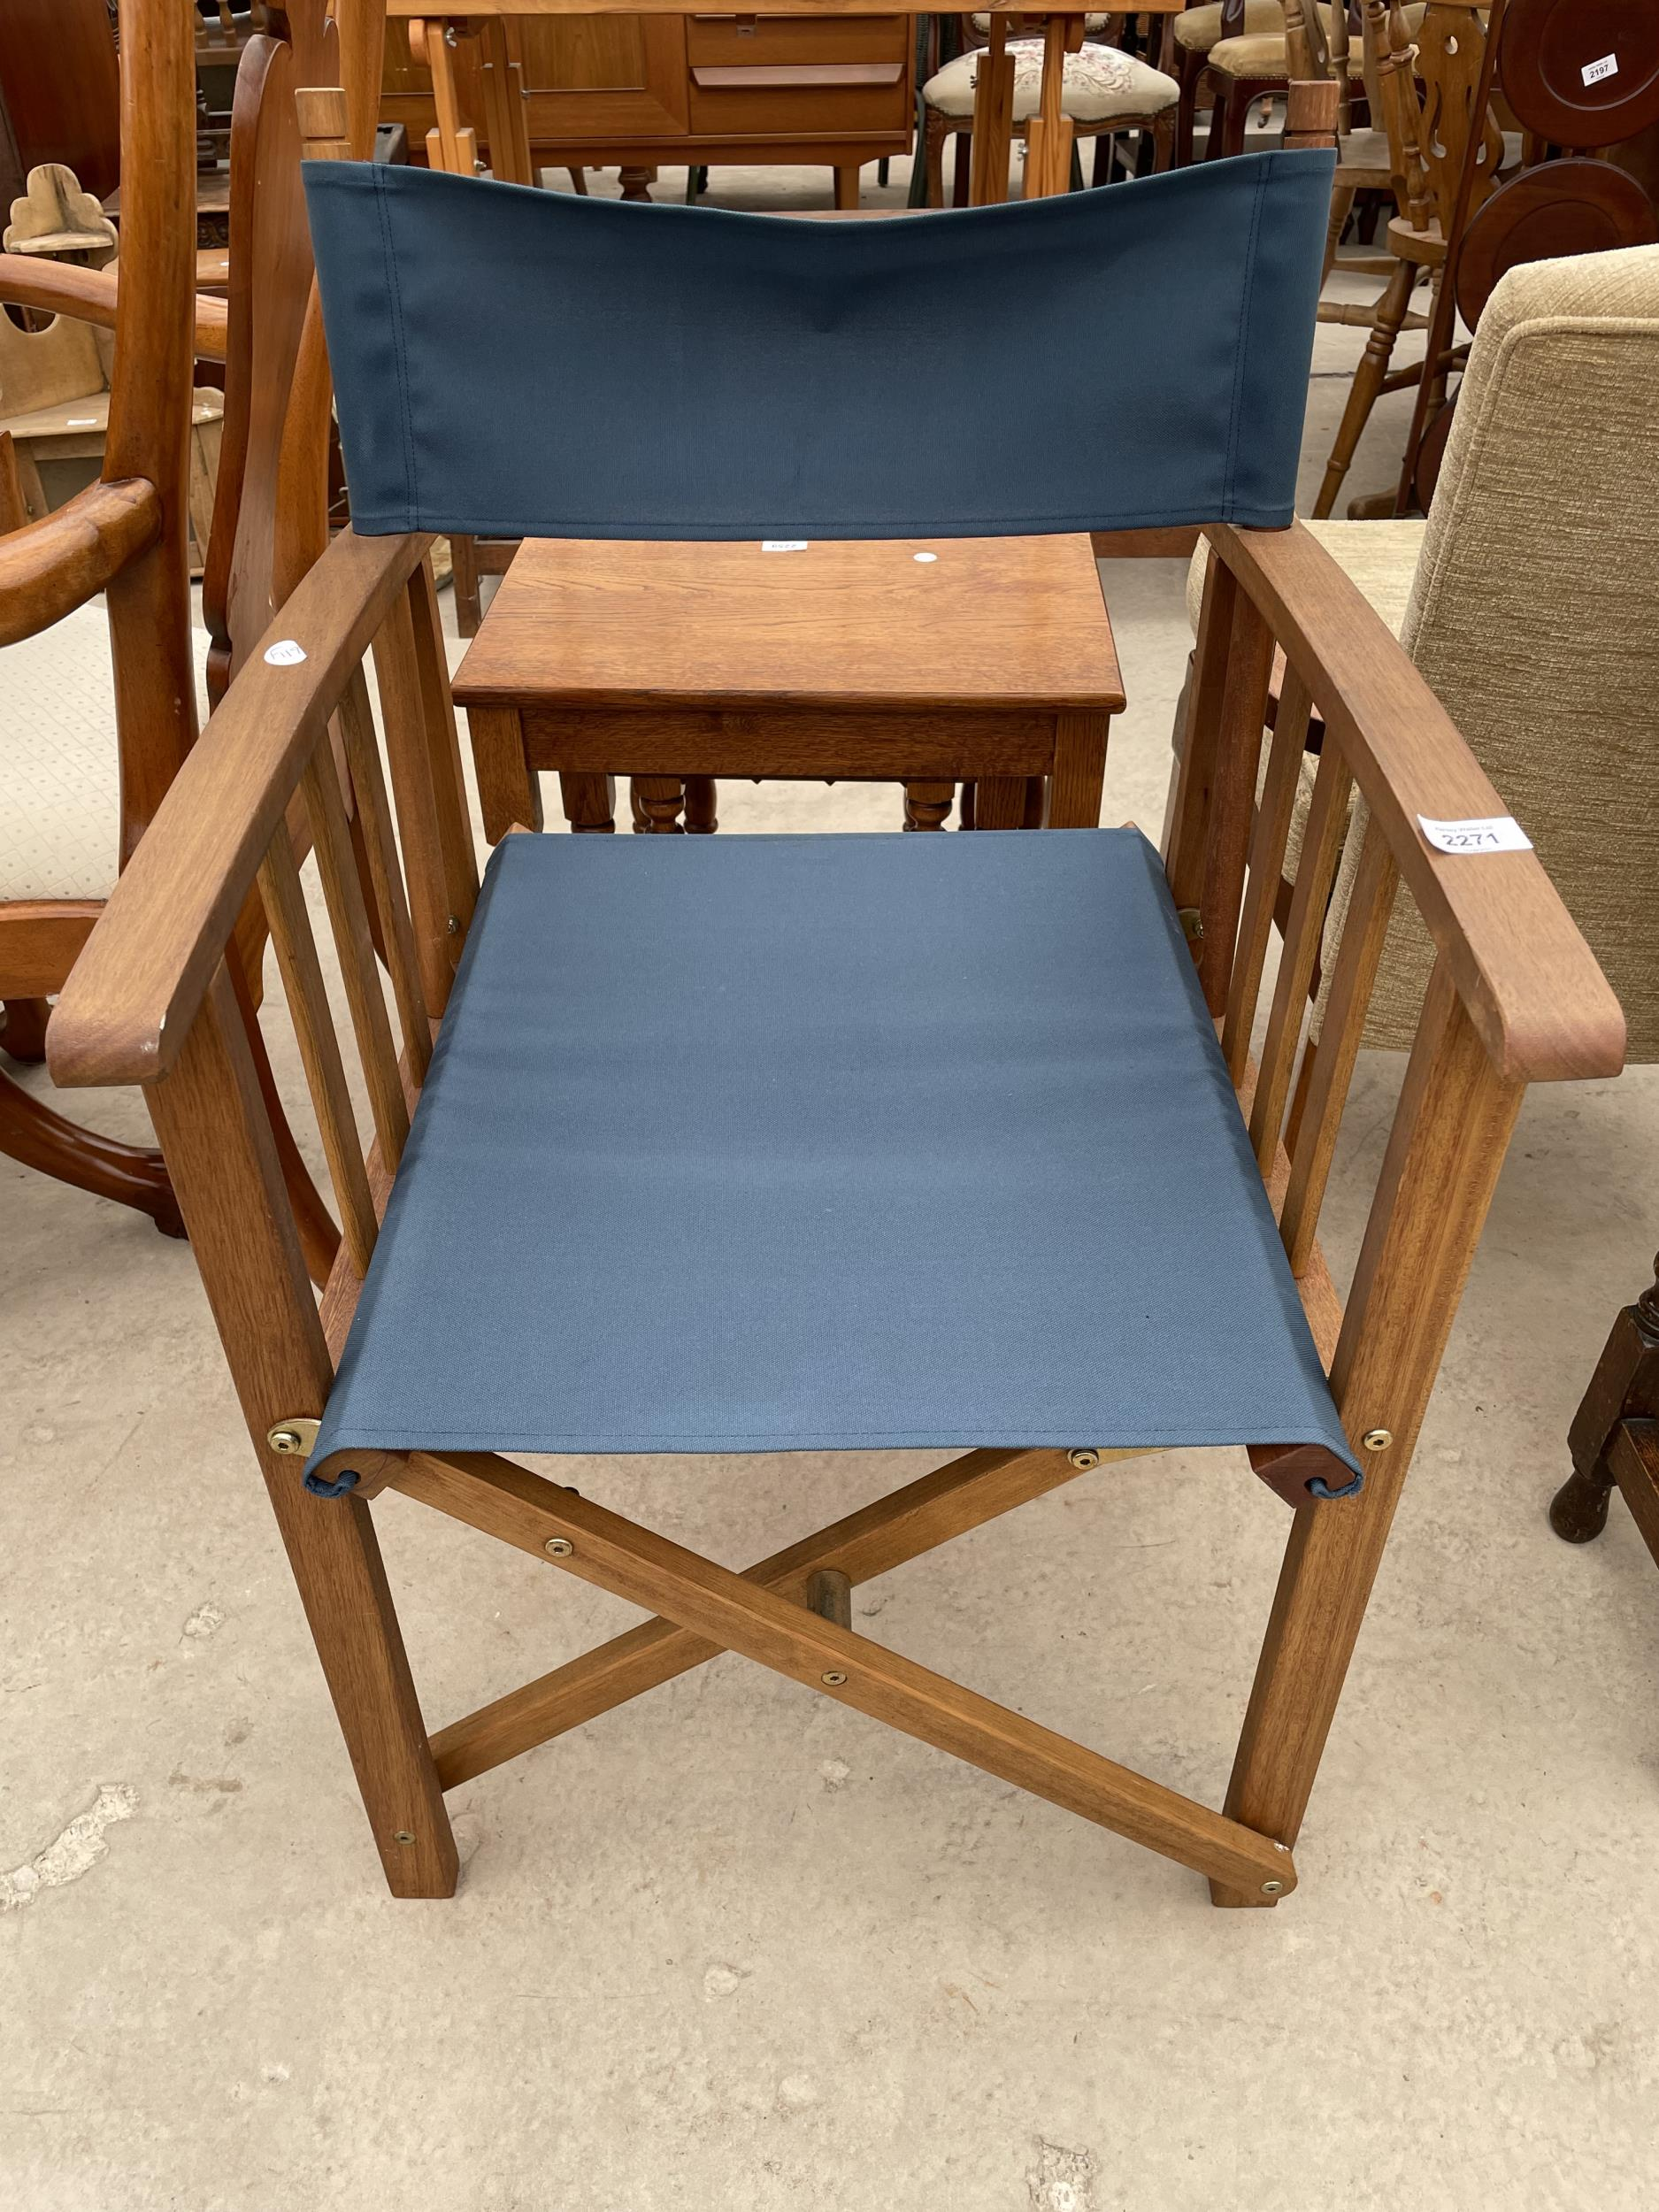 A ROYALCRAFT DIRECTORS STYLE CHAIR